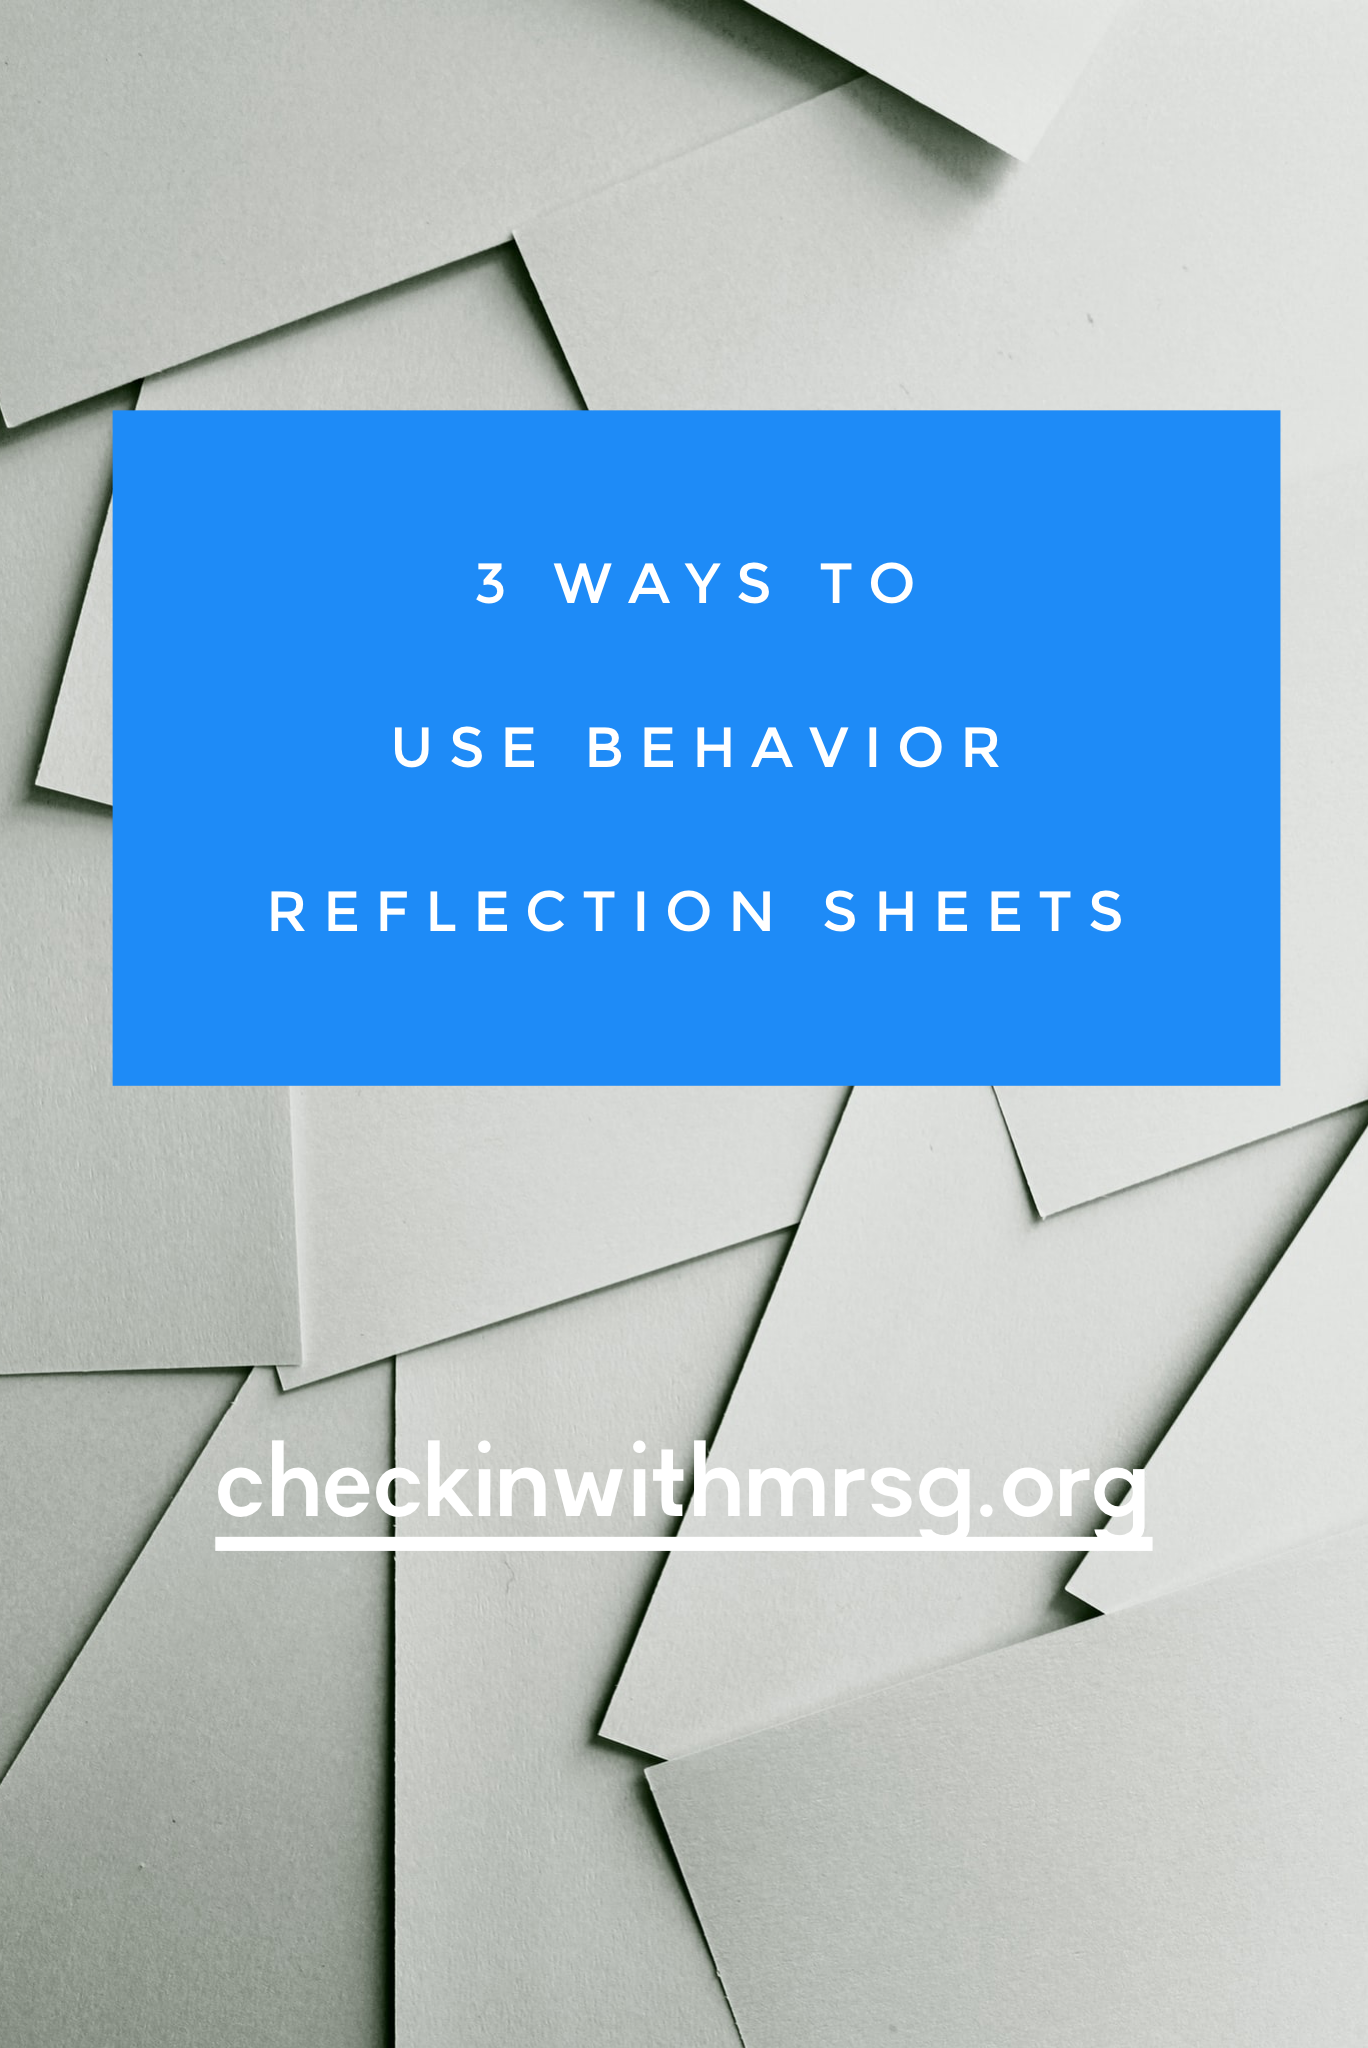 3 Ways To Use Behavior Reflection Sheets